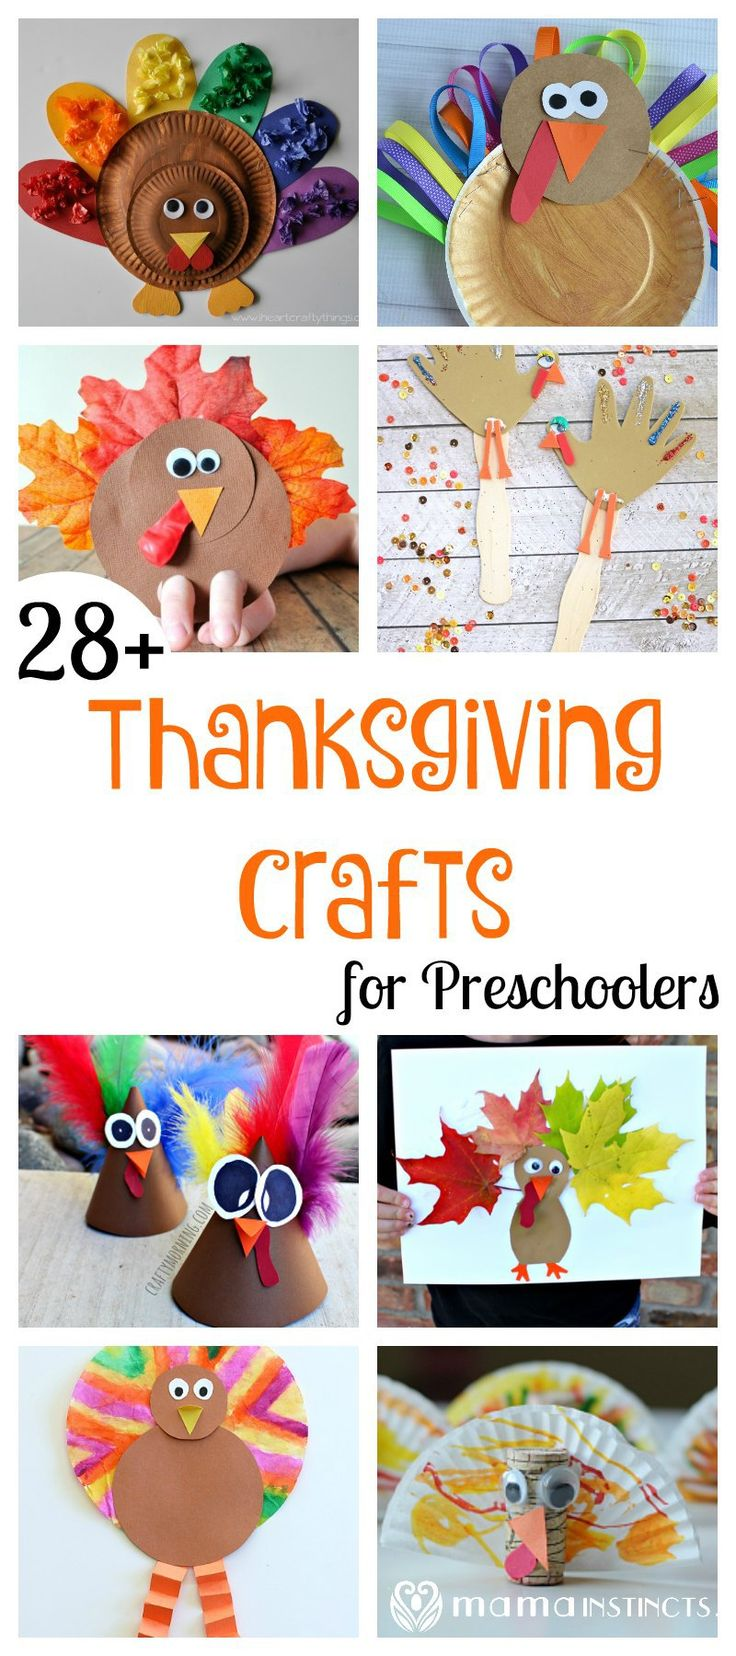 28+ Thanksgiving Crafts for Preschoolers